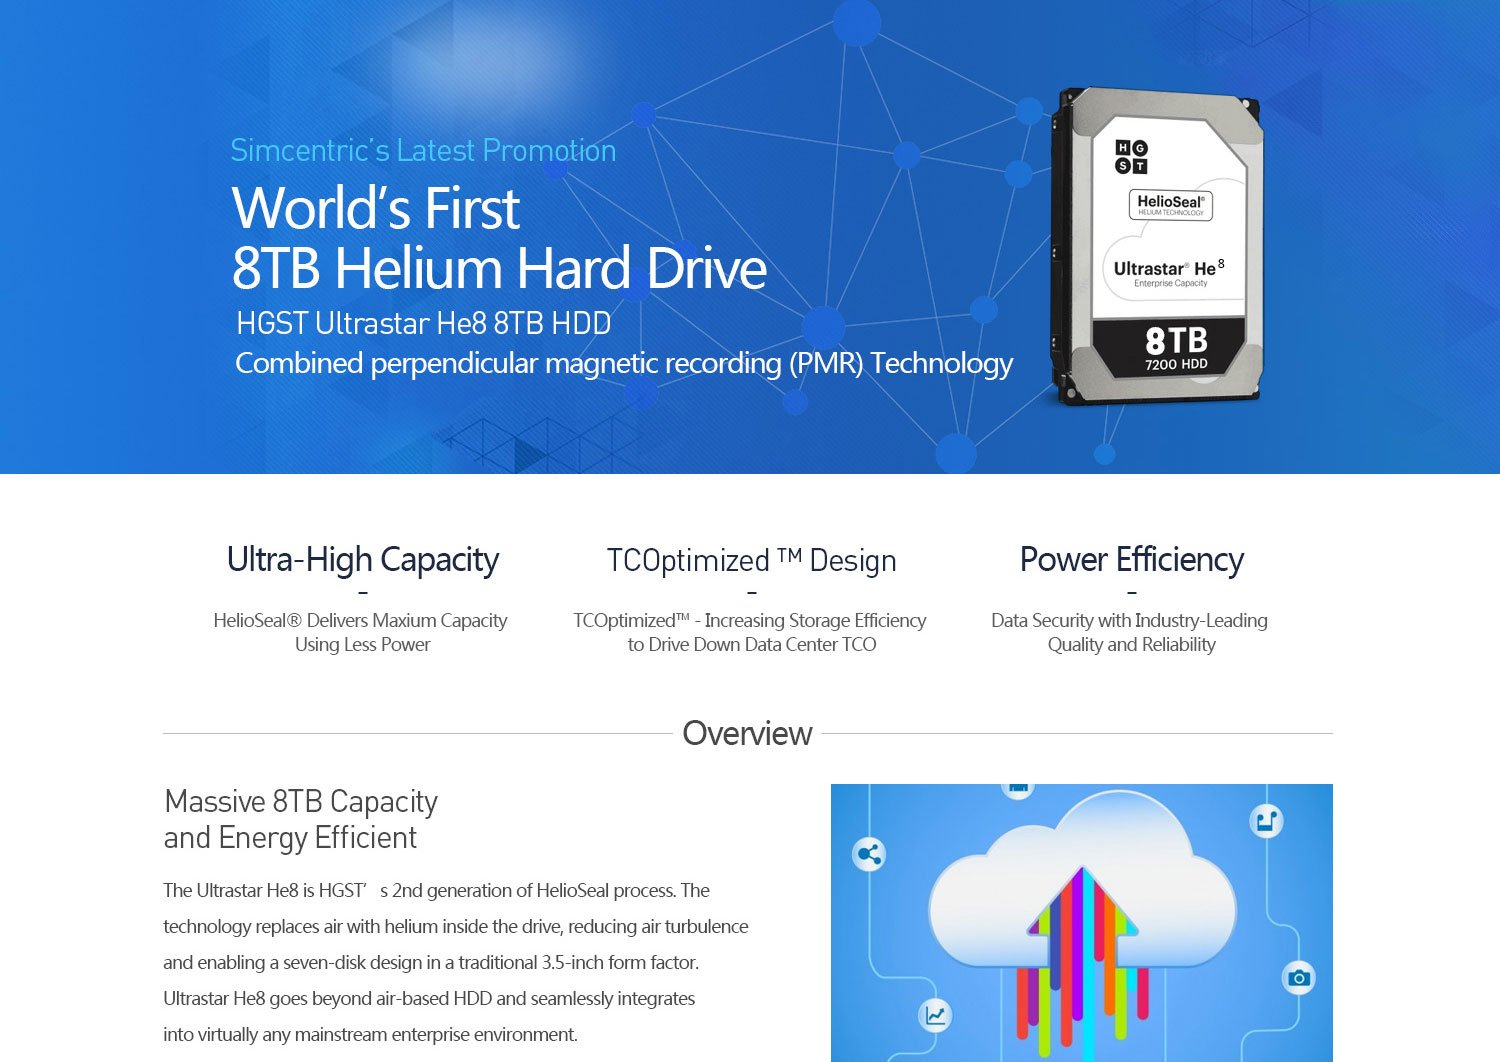 World's first, 8TB helium hard drive, ultra-high capacity, TCOptimizedTM design, power efficiency, three days free trial, breakthrough technology, HelioSeal hard drives